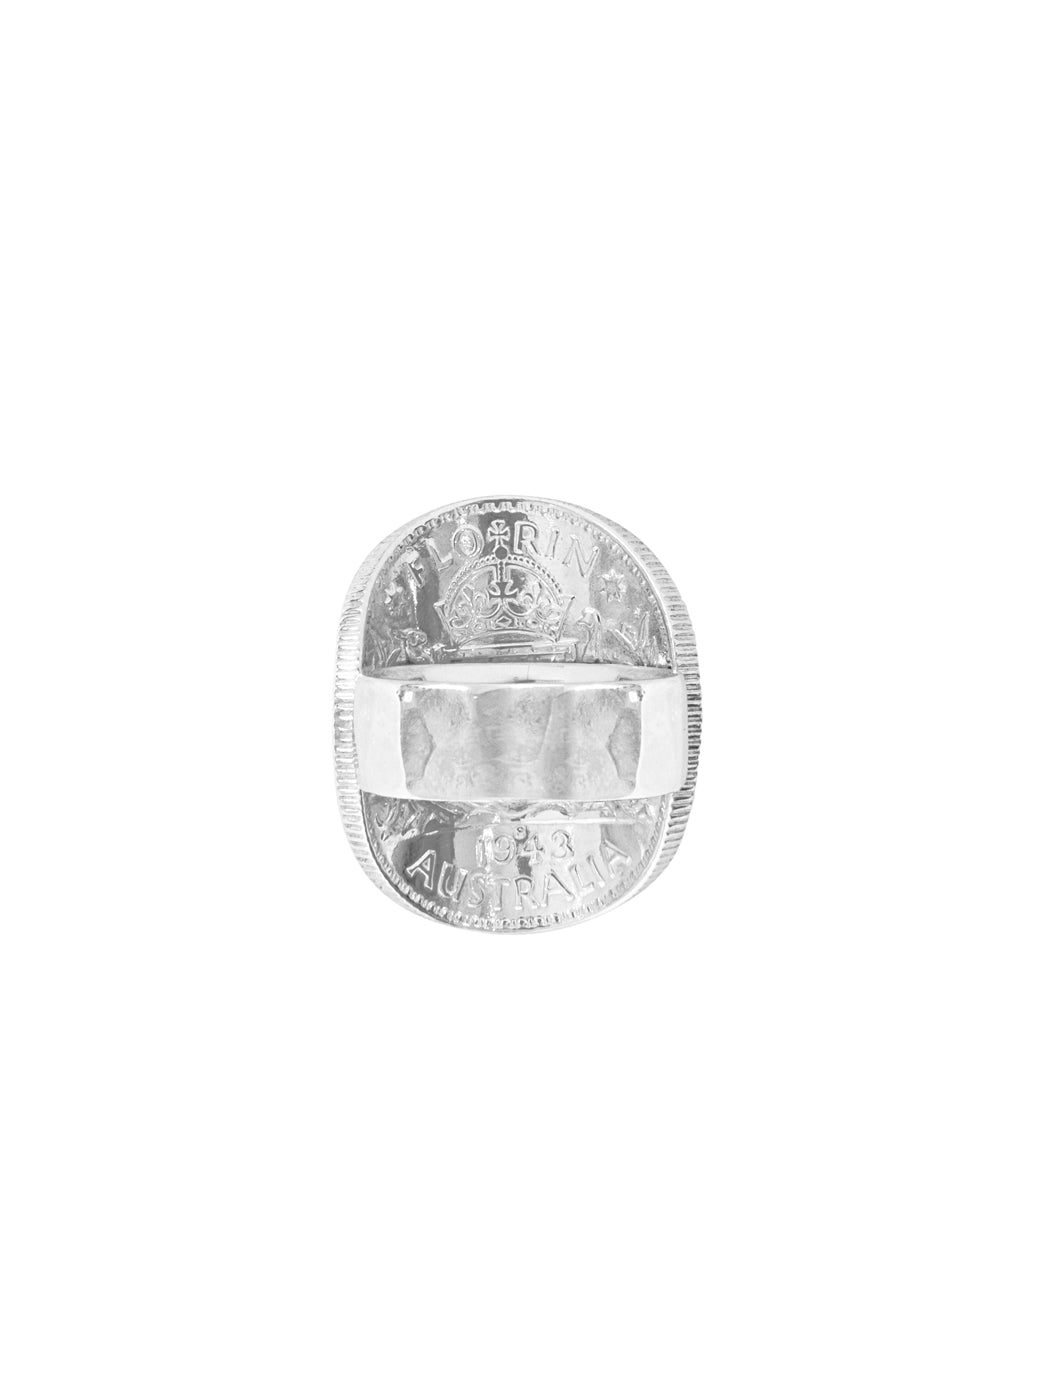 Fiorina Jewellery Men's Bent Coin Ring Back View